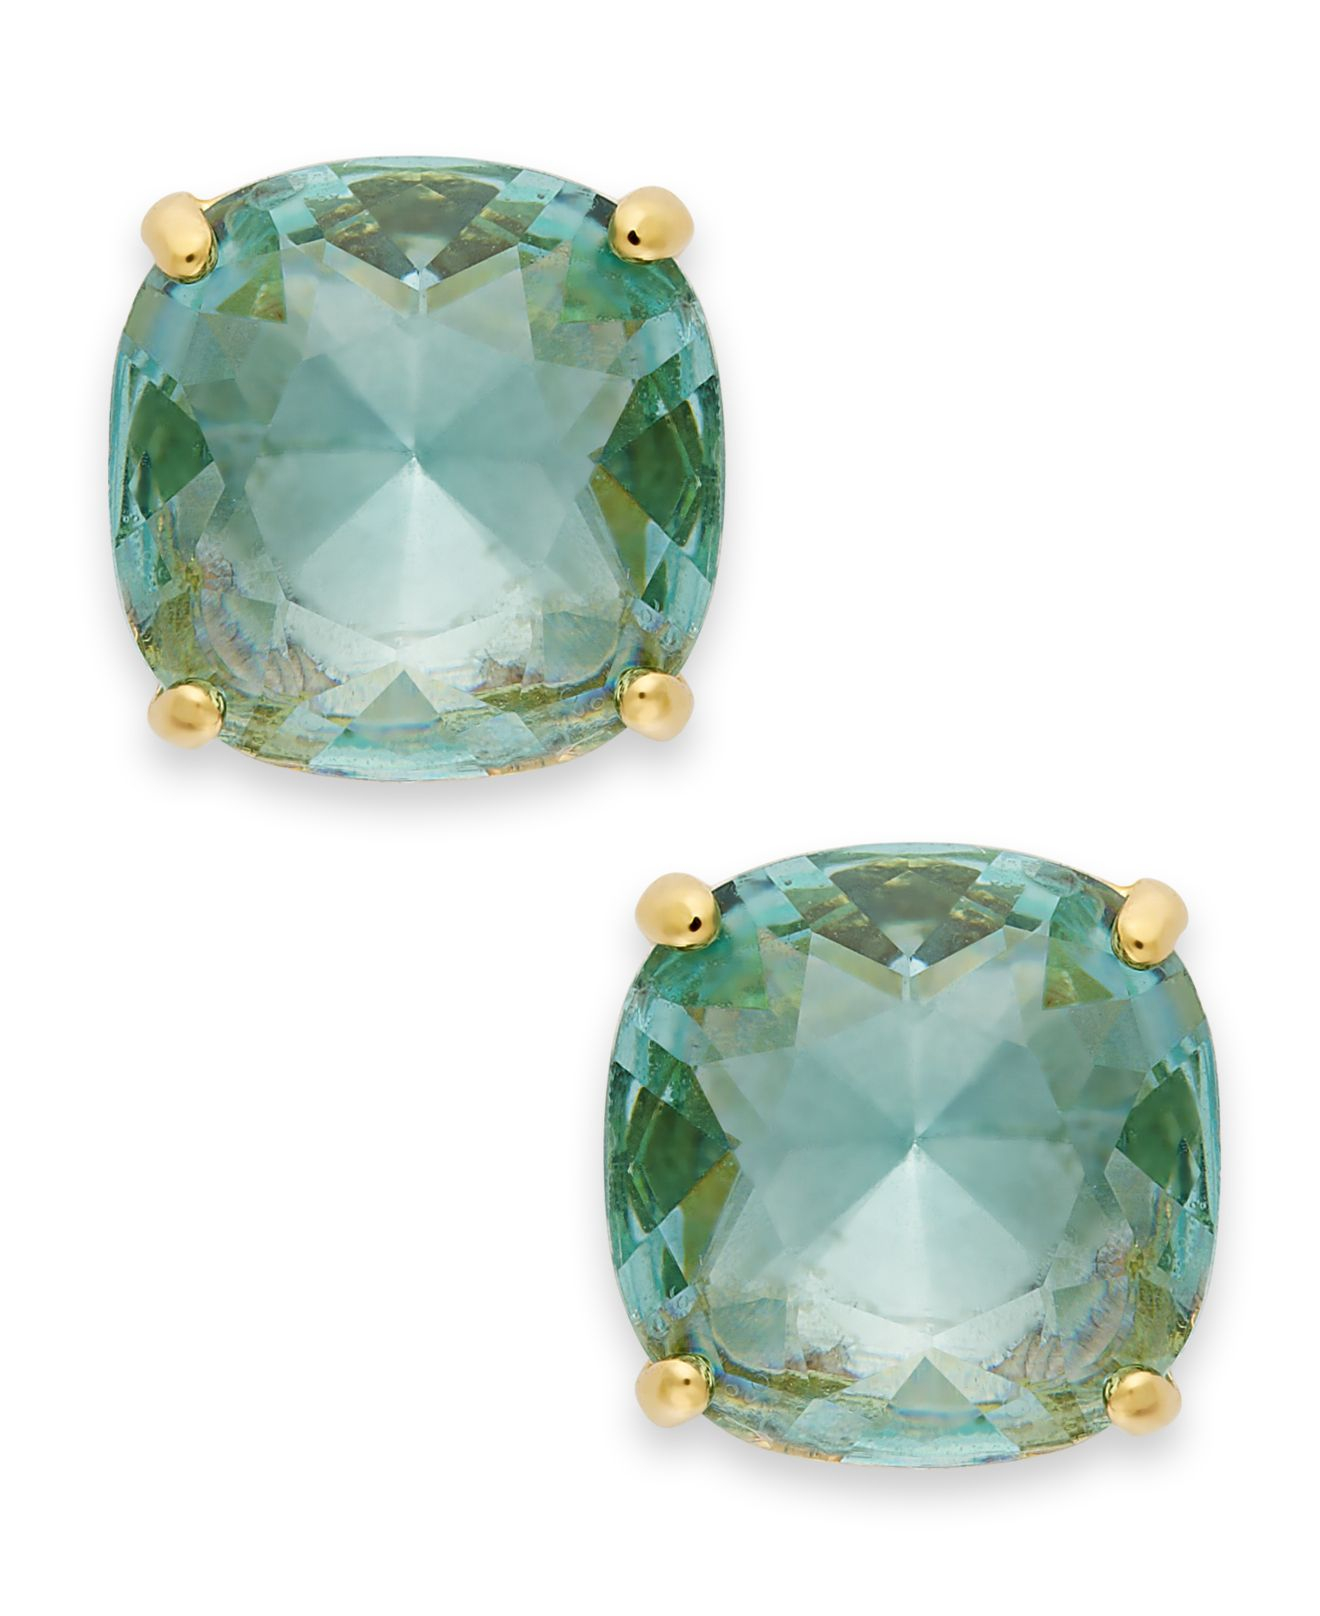 Kate Spade New York 12k Gold Plated Blue Stone Square Stud